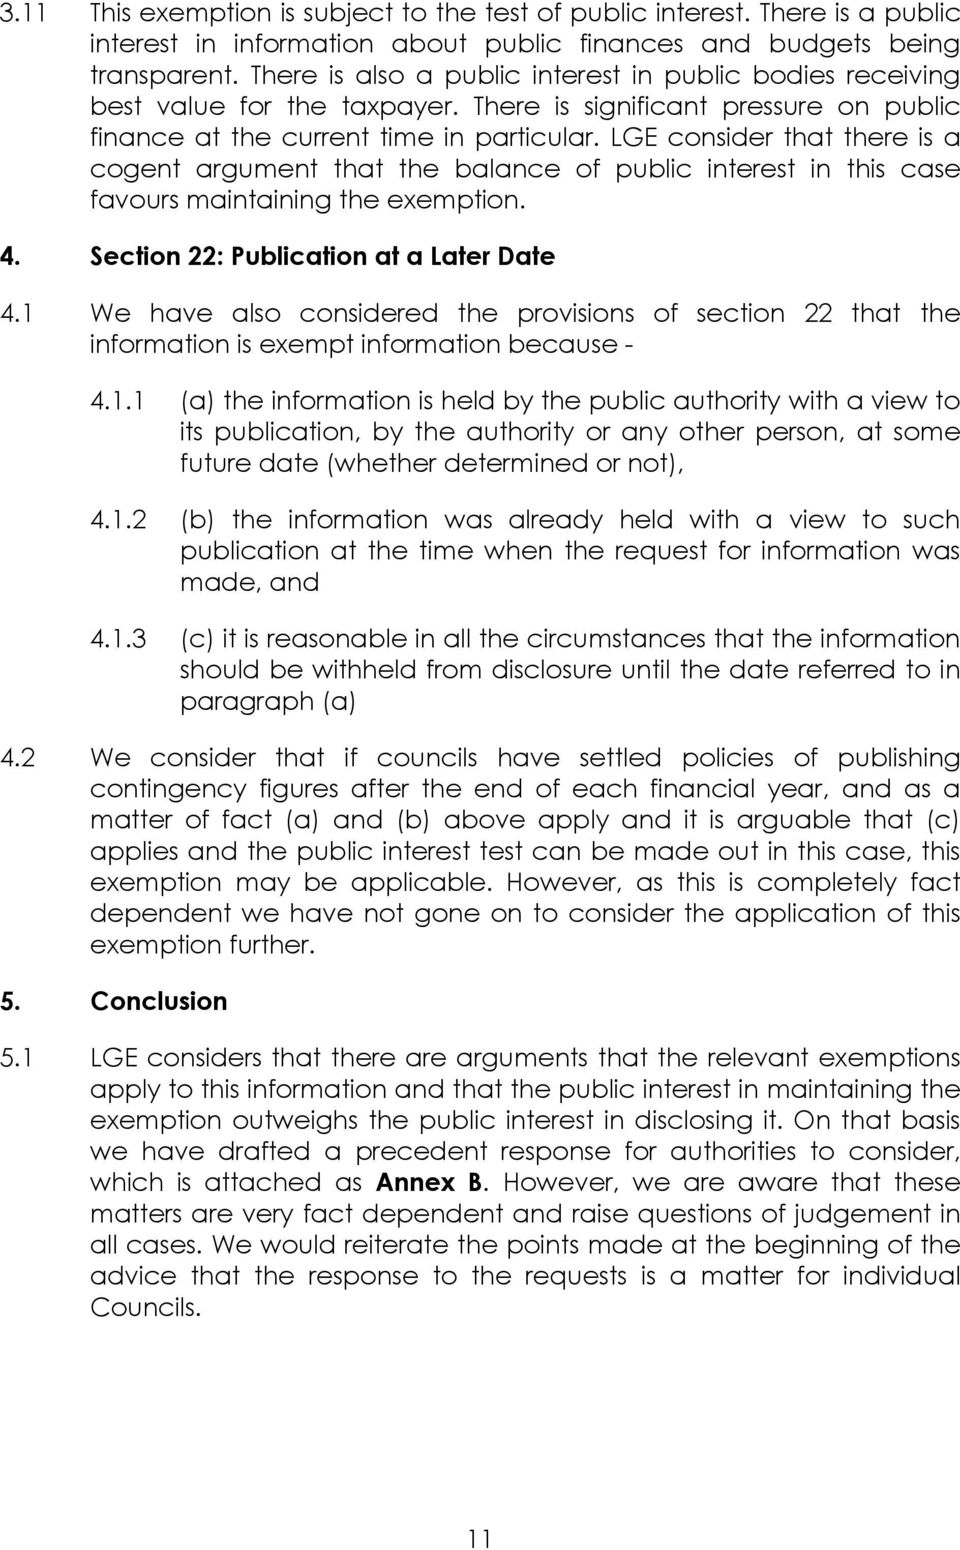 LGE consider that there is a cogent argument that the balance of public interest in this case favours maintaining the exemption. 4. Section 22: Publication at a Later Date 4.